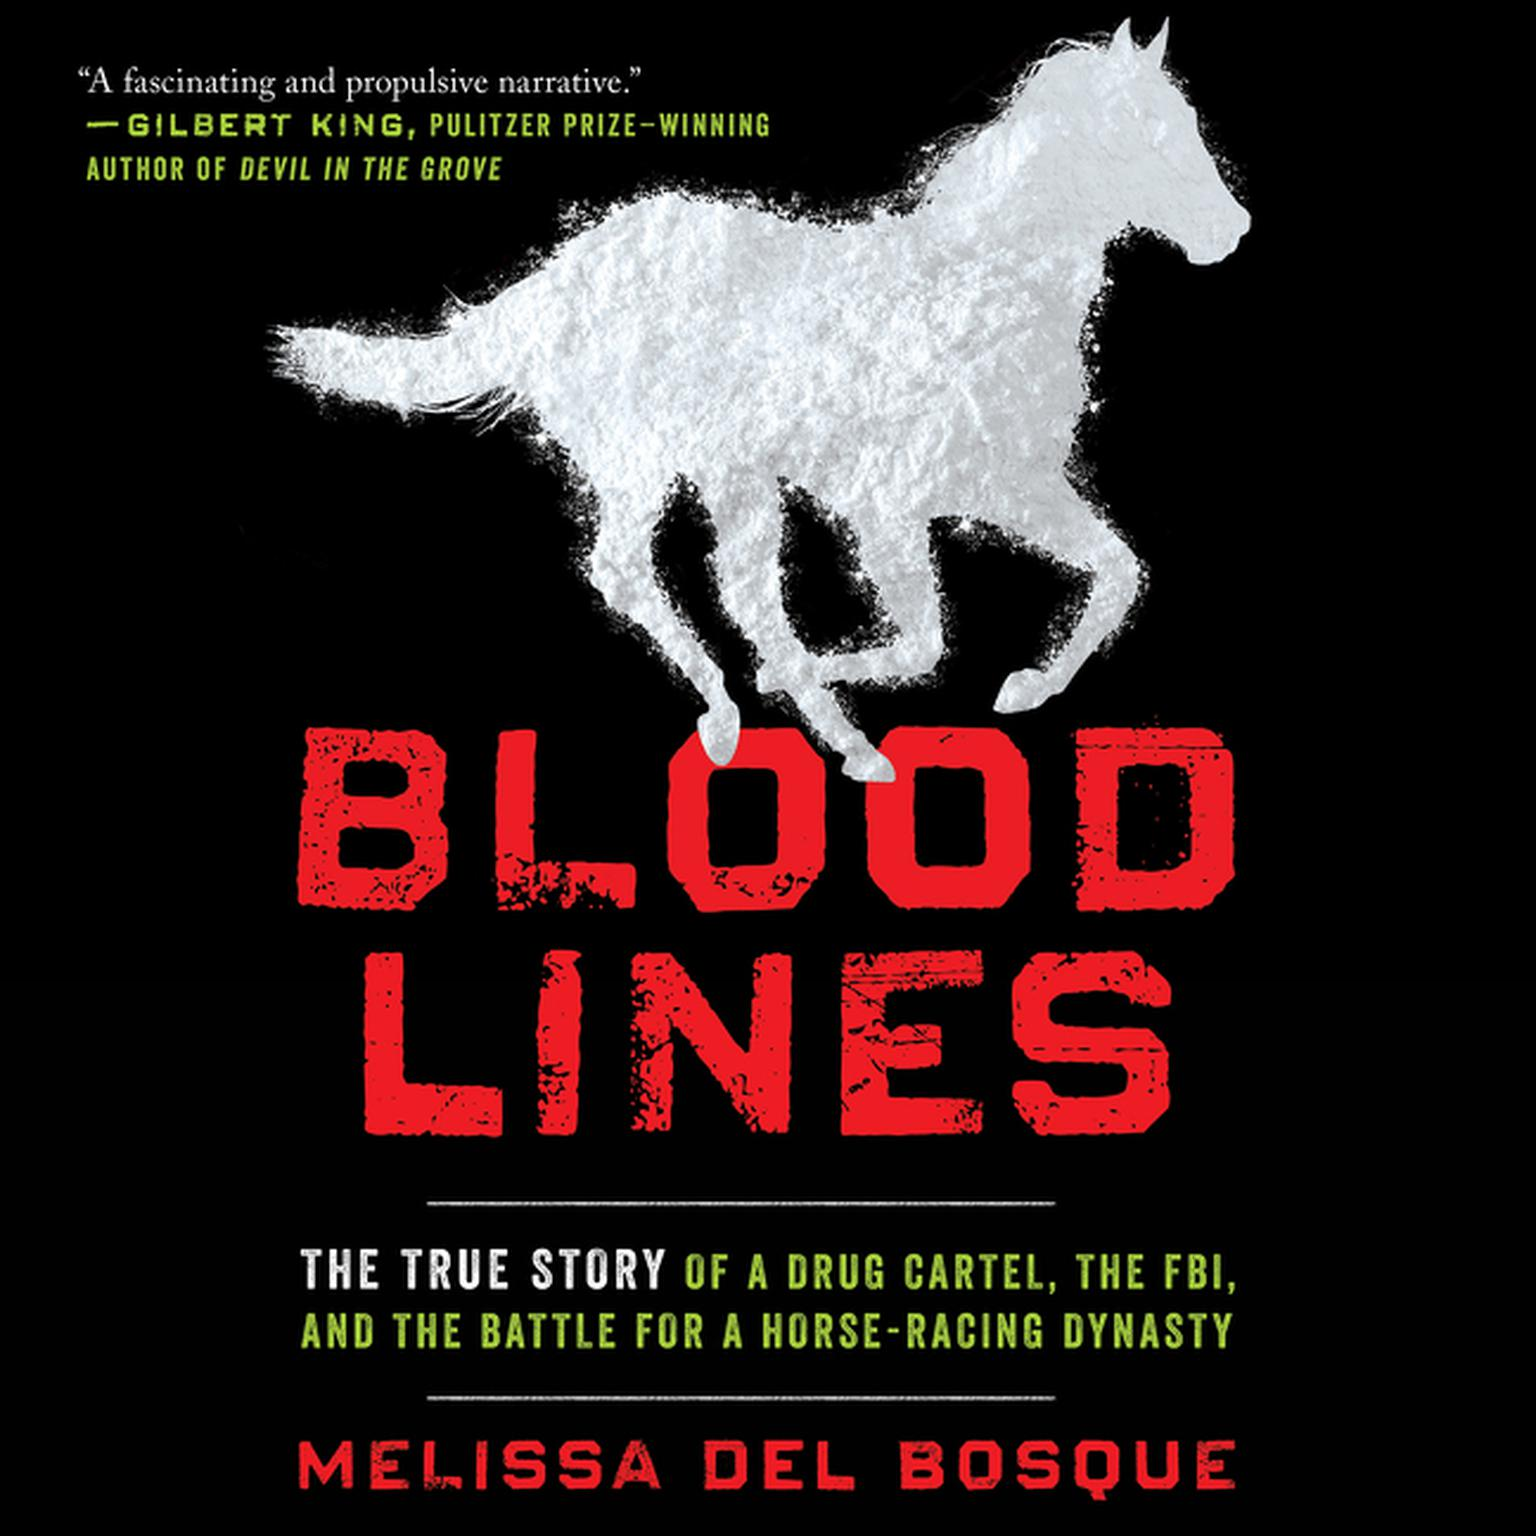 Printable Bloodlines: The True Story of a Drug Cartel, the FBI, and the Battle for a Horse-Racing Dynasty Audiobook Cover Art